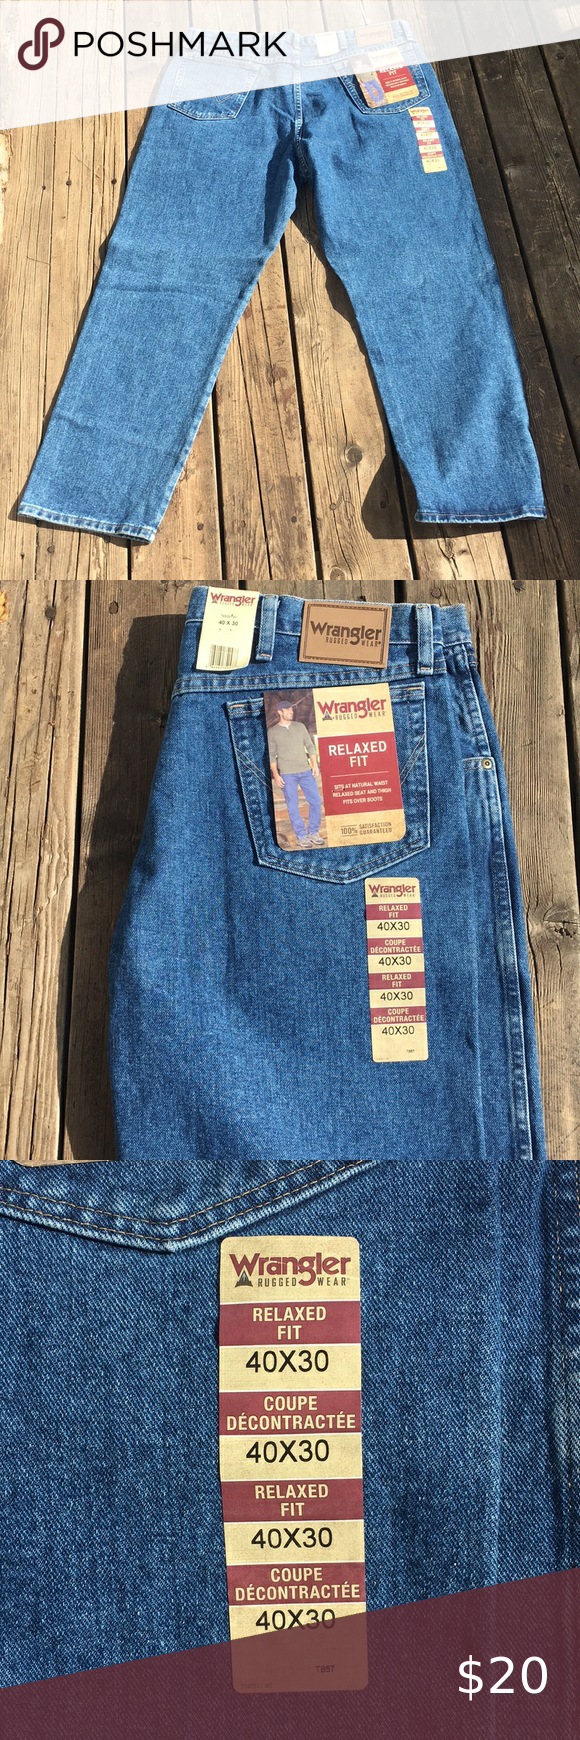 Wrangler Rugged Wear Relaxed Fit Men S Jeans How To Wear Relaxed Fit Clothes Design